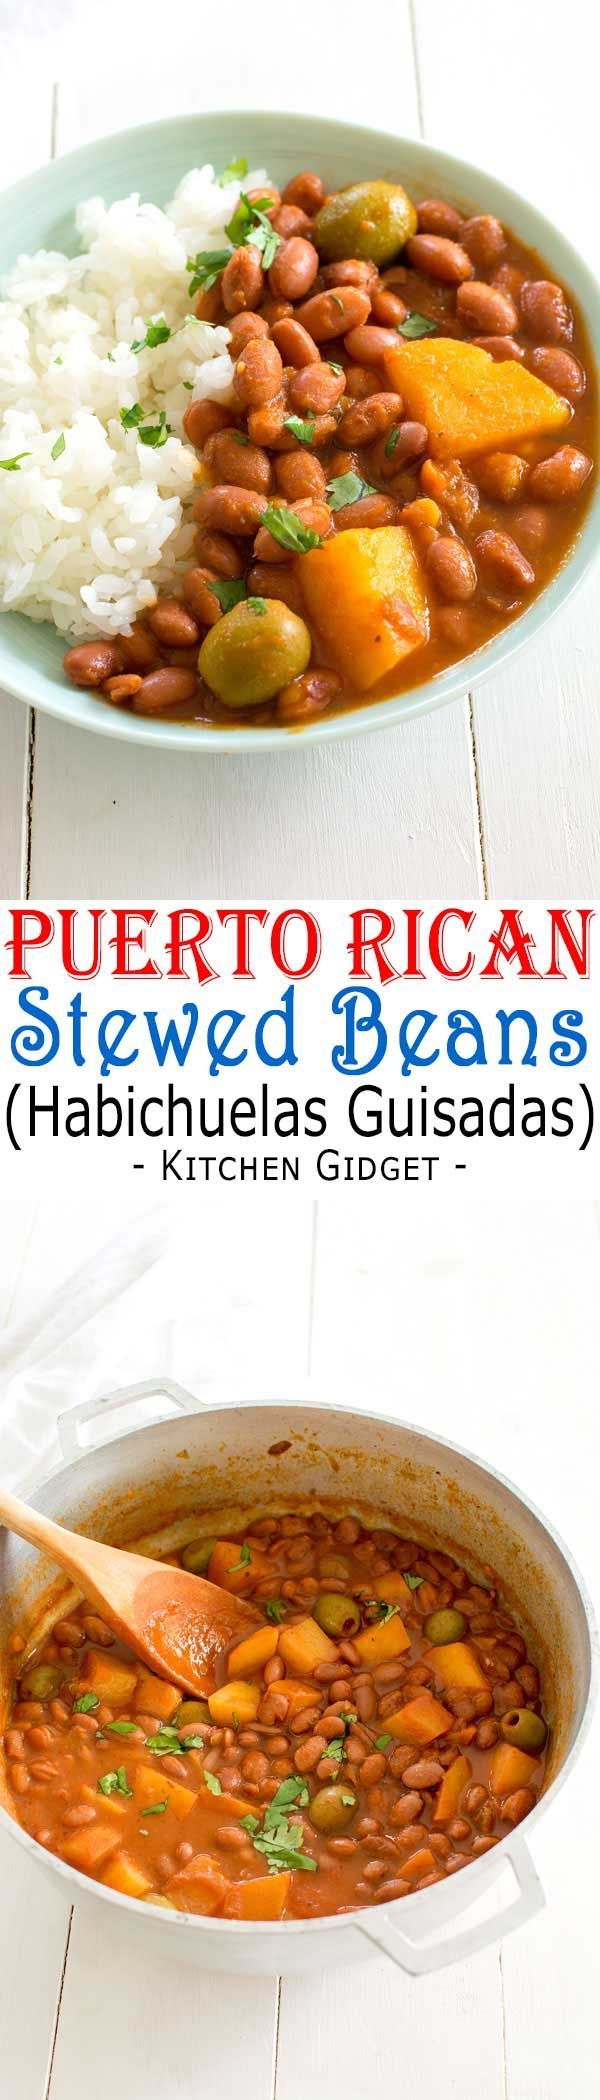 Puerto Rican Rice And Beans Habichuelas Guisadas Easy Recipe For Authentic Puerto Rican Style Boricua Recipes Mexican Food Recipes Rice Recipes For Dinner